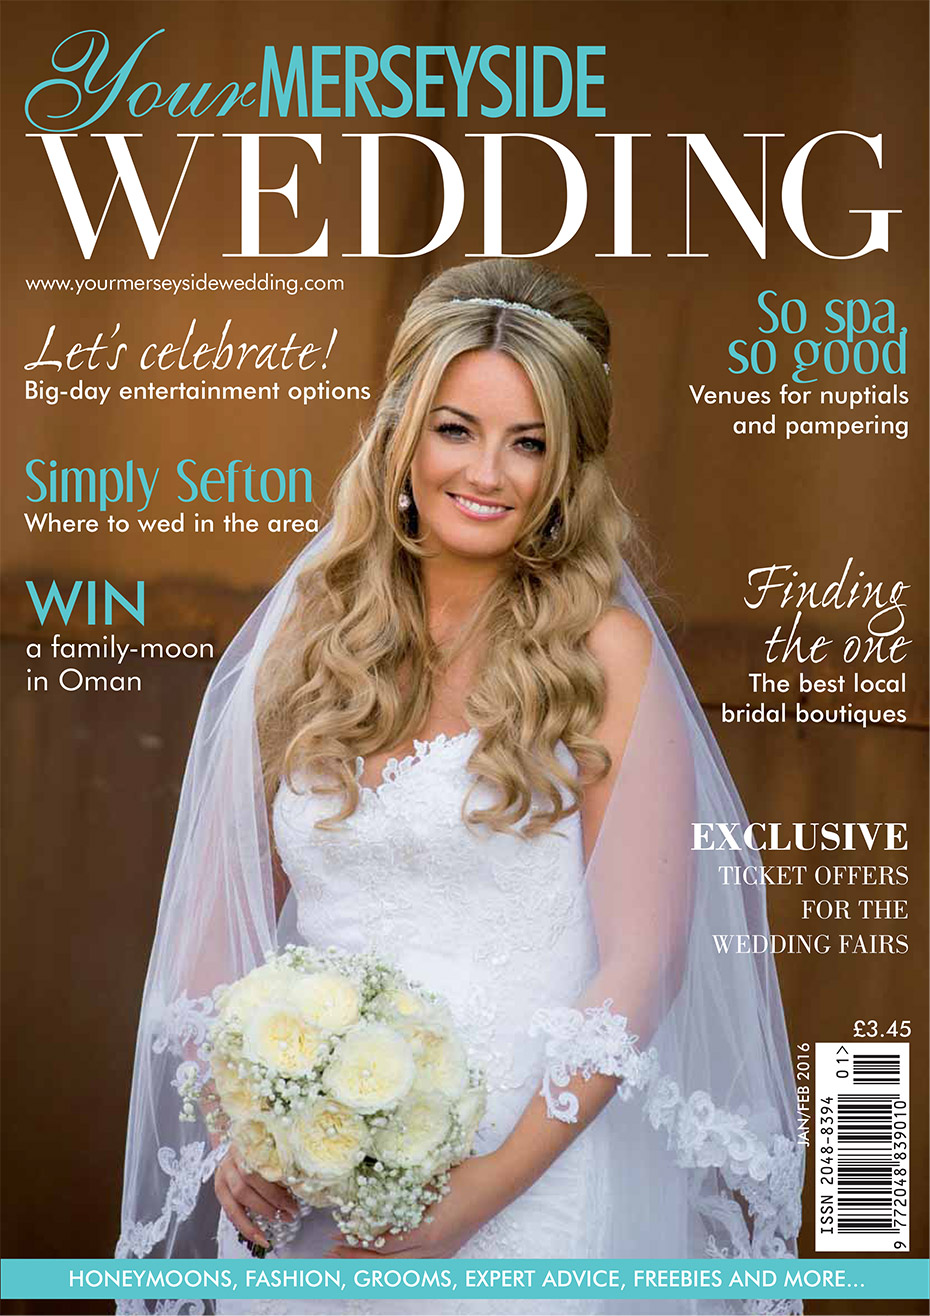 Wedding Magazine Front Cover 2016 - Matthew Rycraft